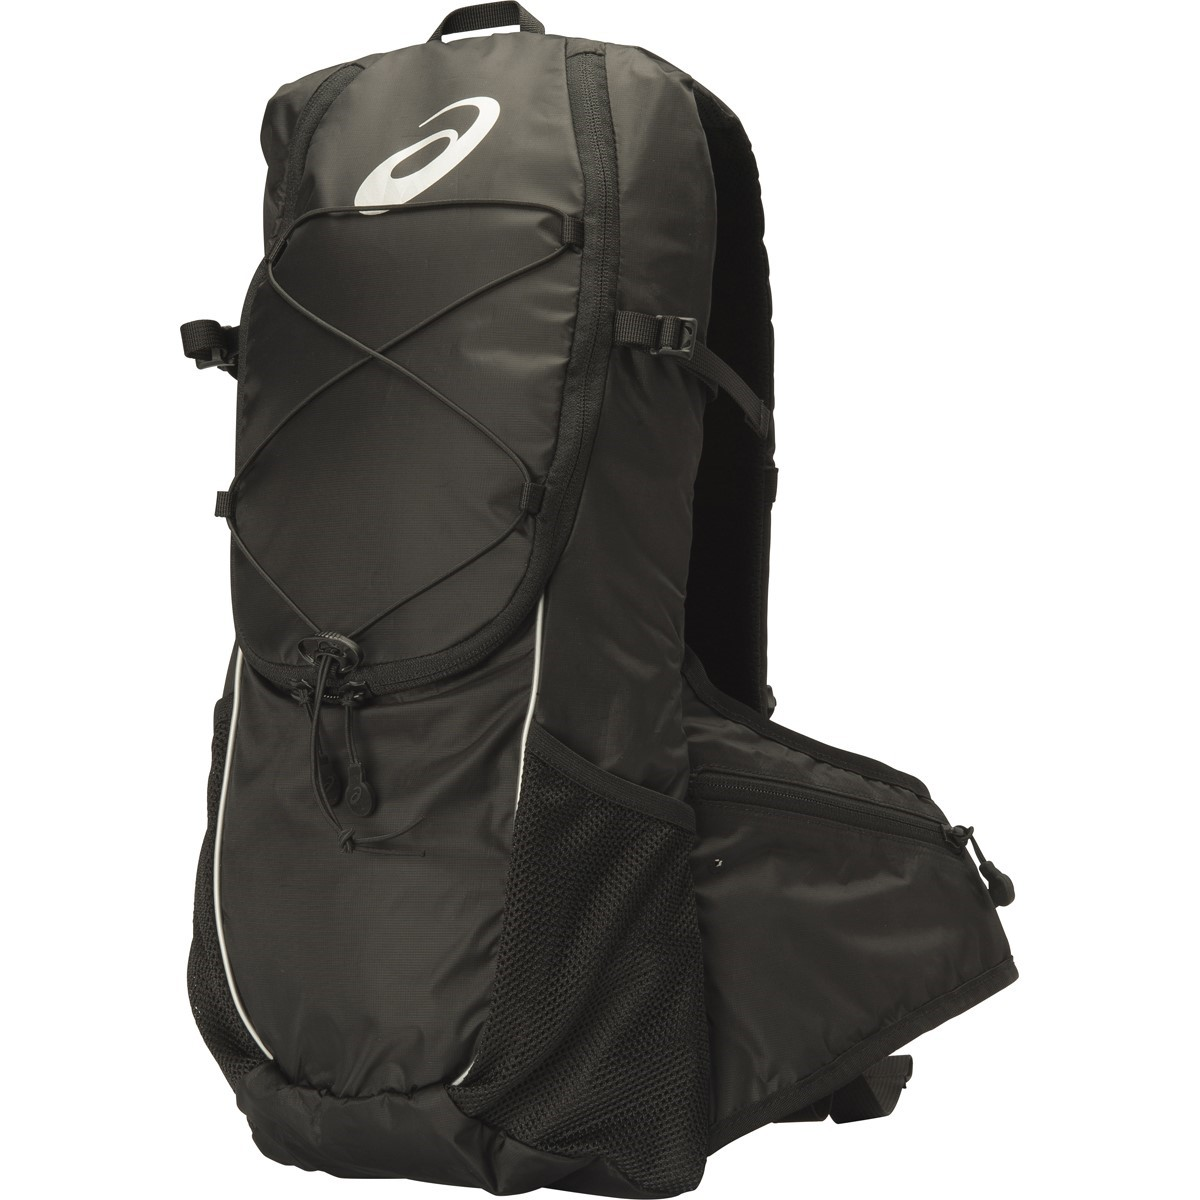 asics backpack Black